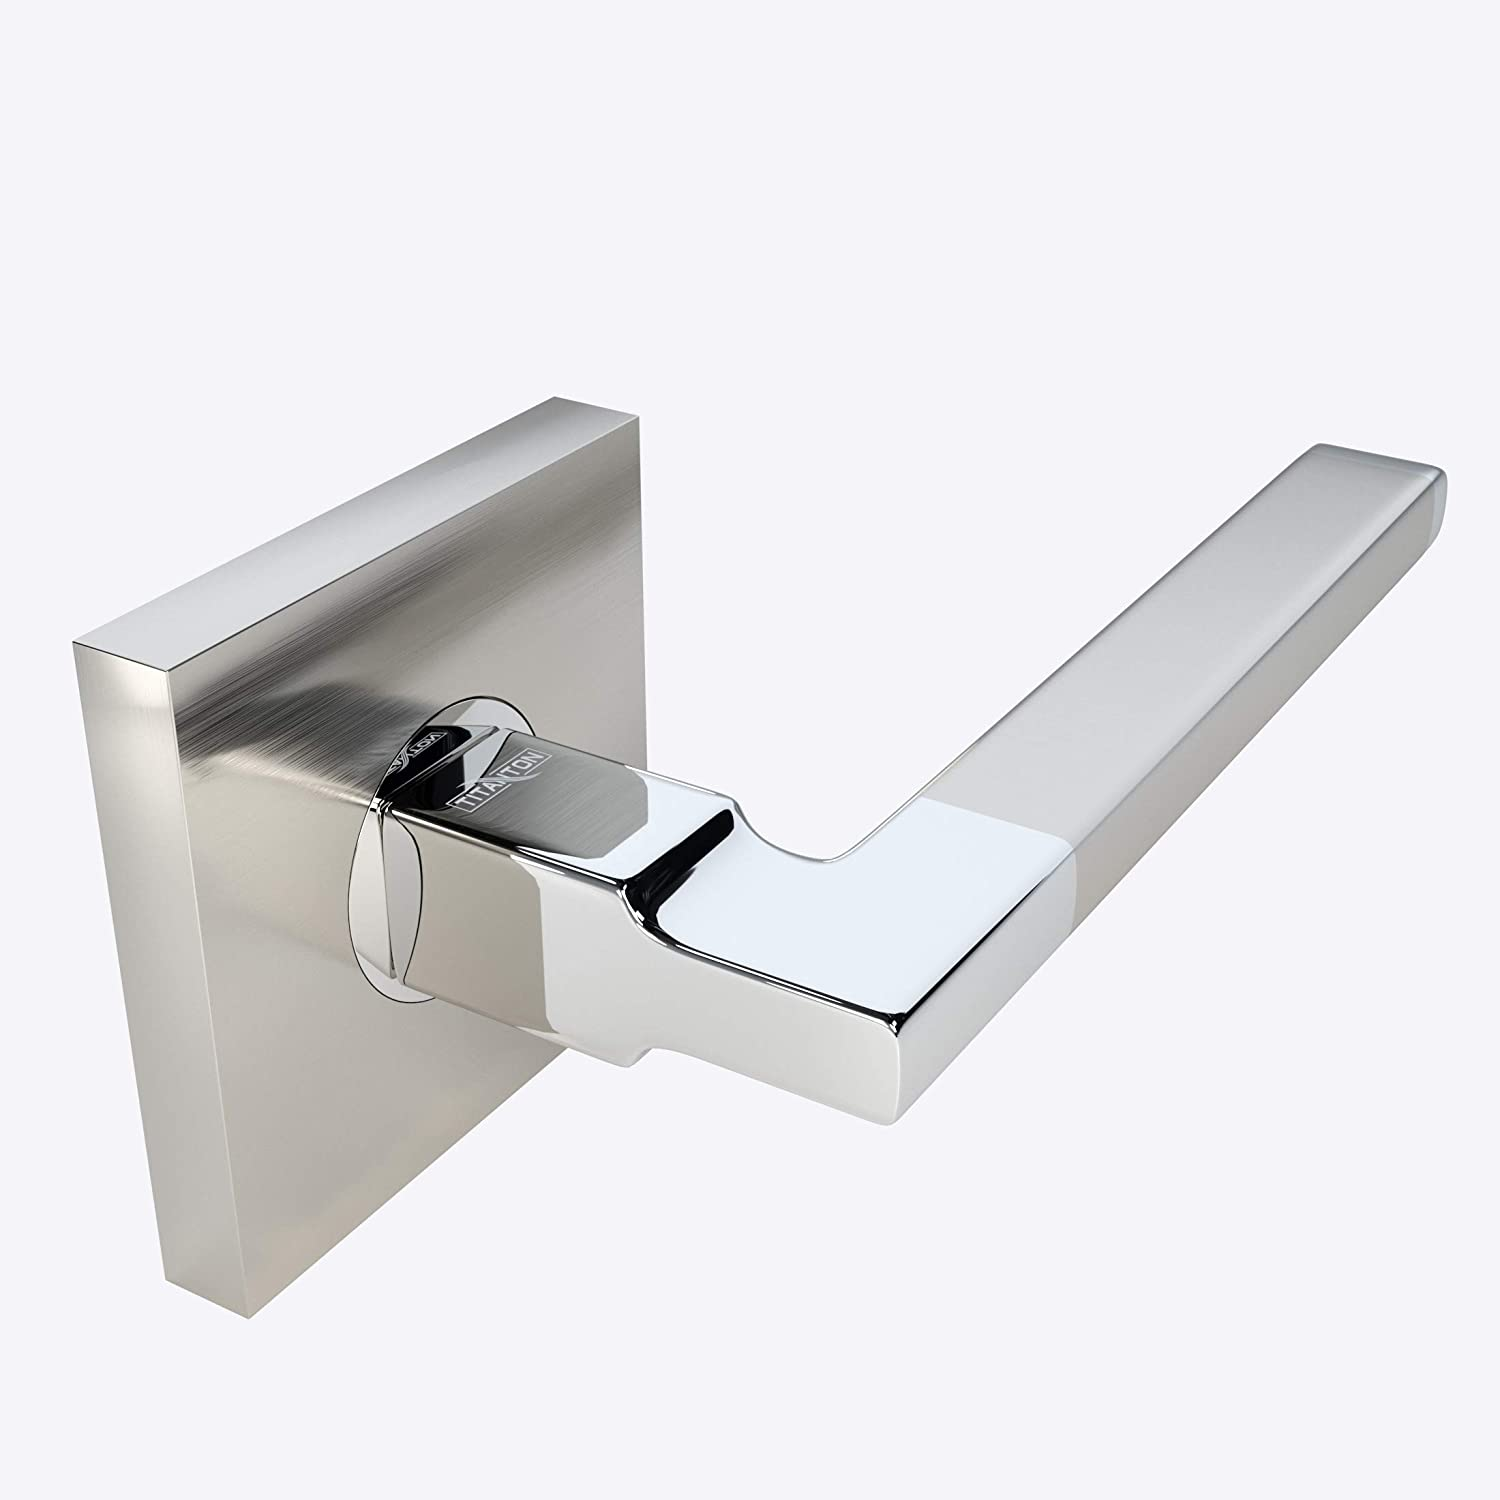 TITANTON 1703 Polished Chrome Finish with Privacy Pin Function Modern Door Handle Door Lever Set in Satin Nickel